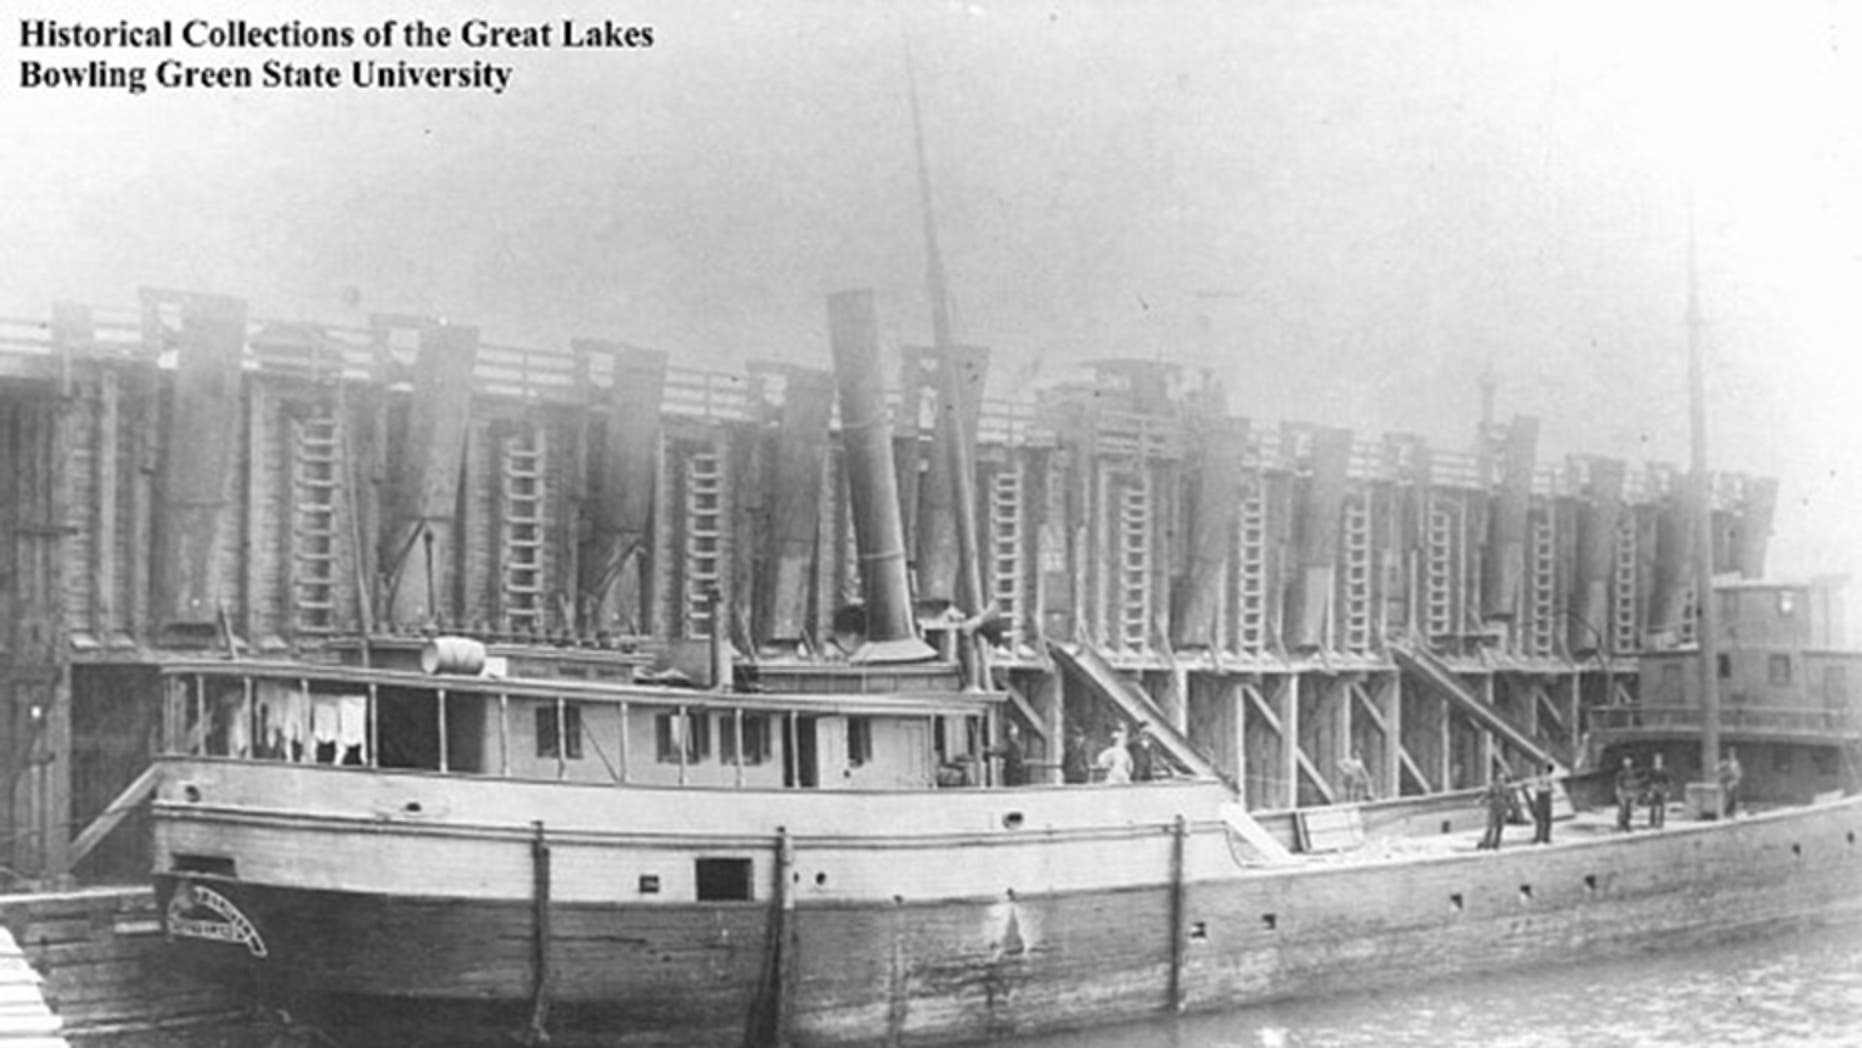 The wooden steam barge Margaret Olwill sank in Lake Erie in 1899 during a storm.